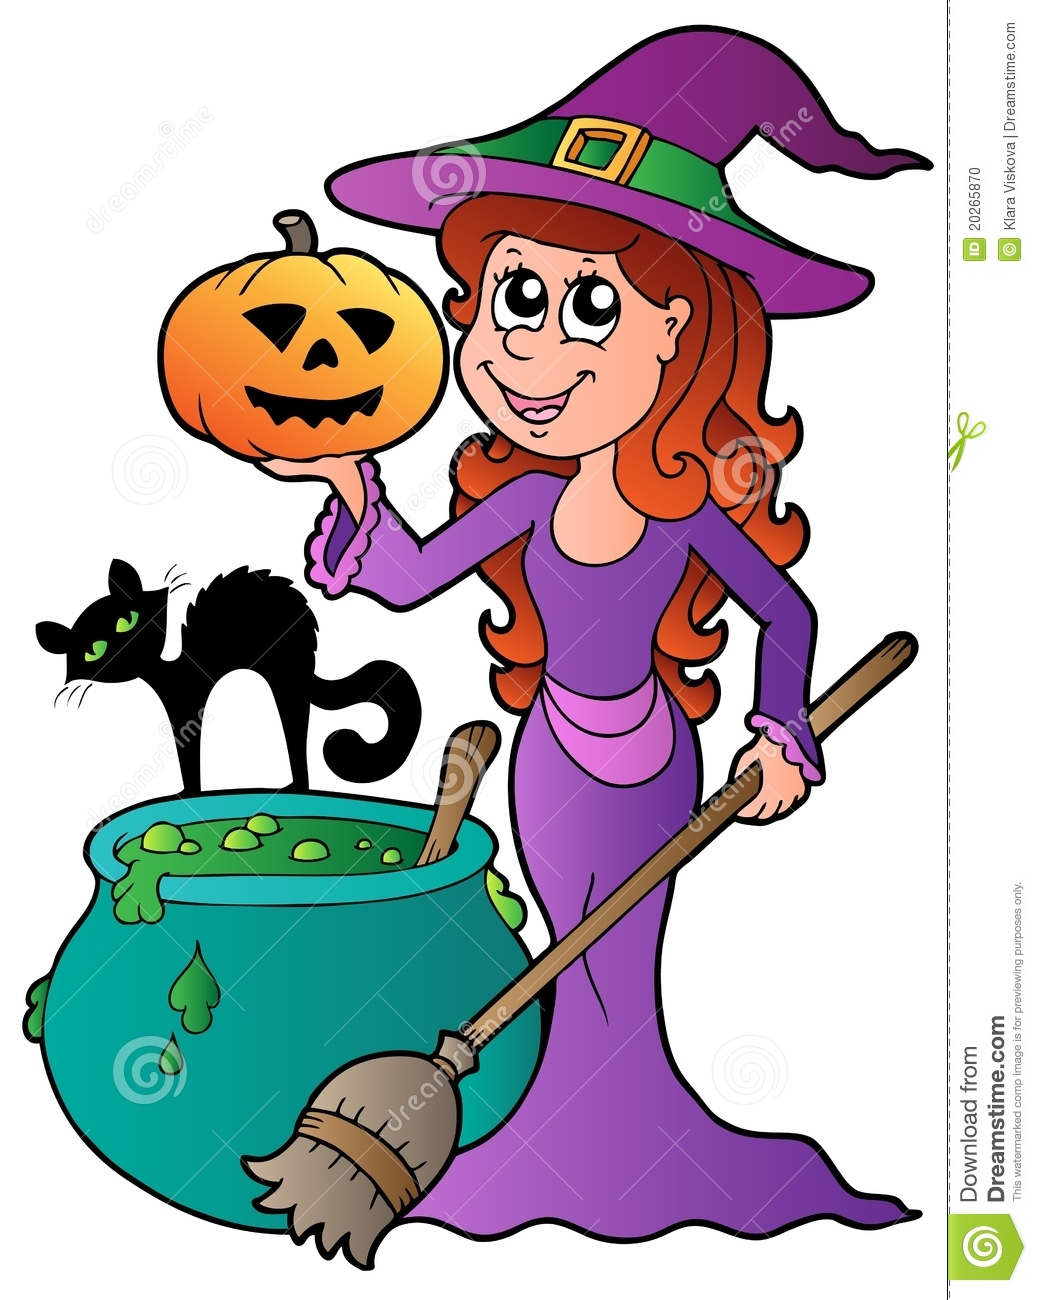 Cartoon halloween witch with cat stock vector image - Clipart bricolage ...